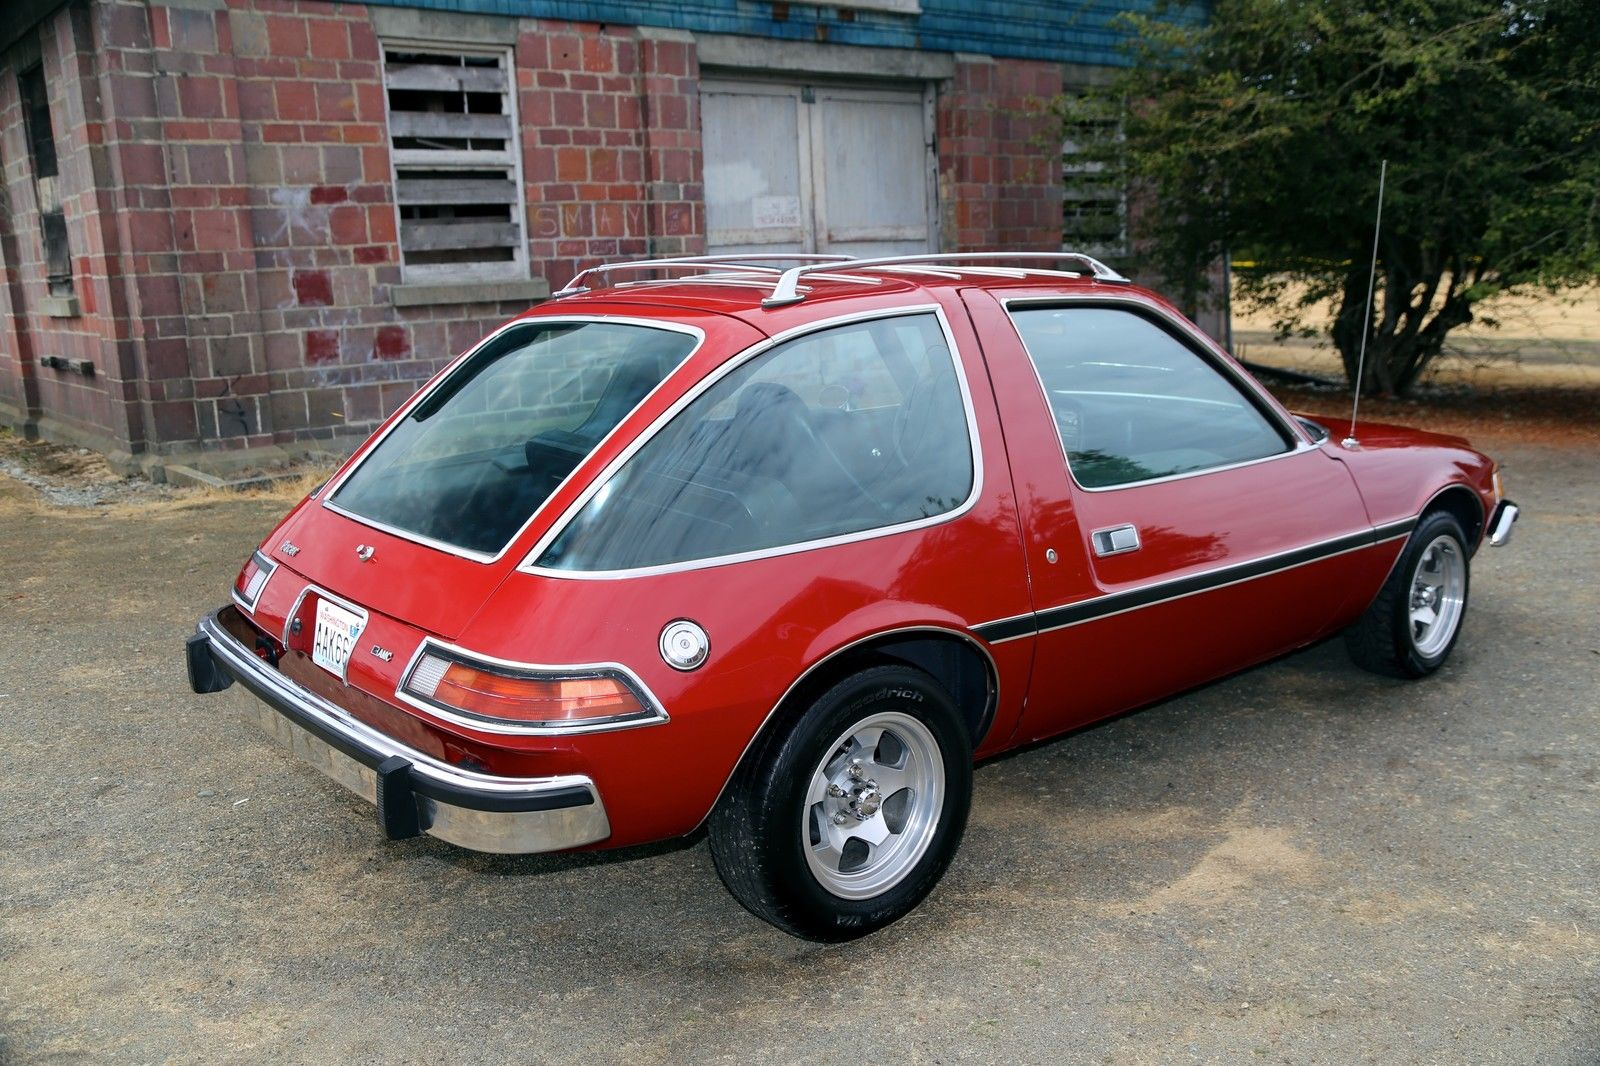 Daily Turismo: Flying Fishbowl: 1975 AMC Pacer